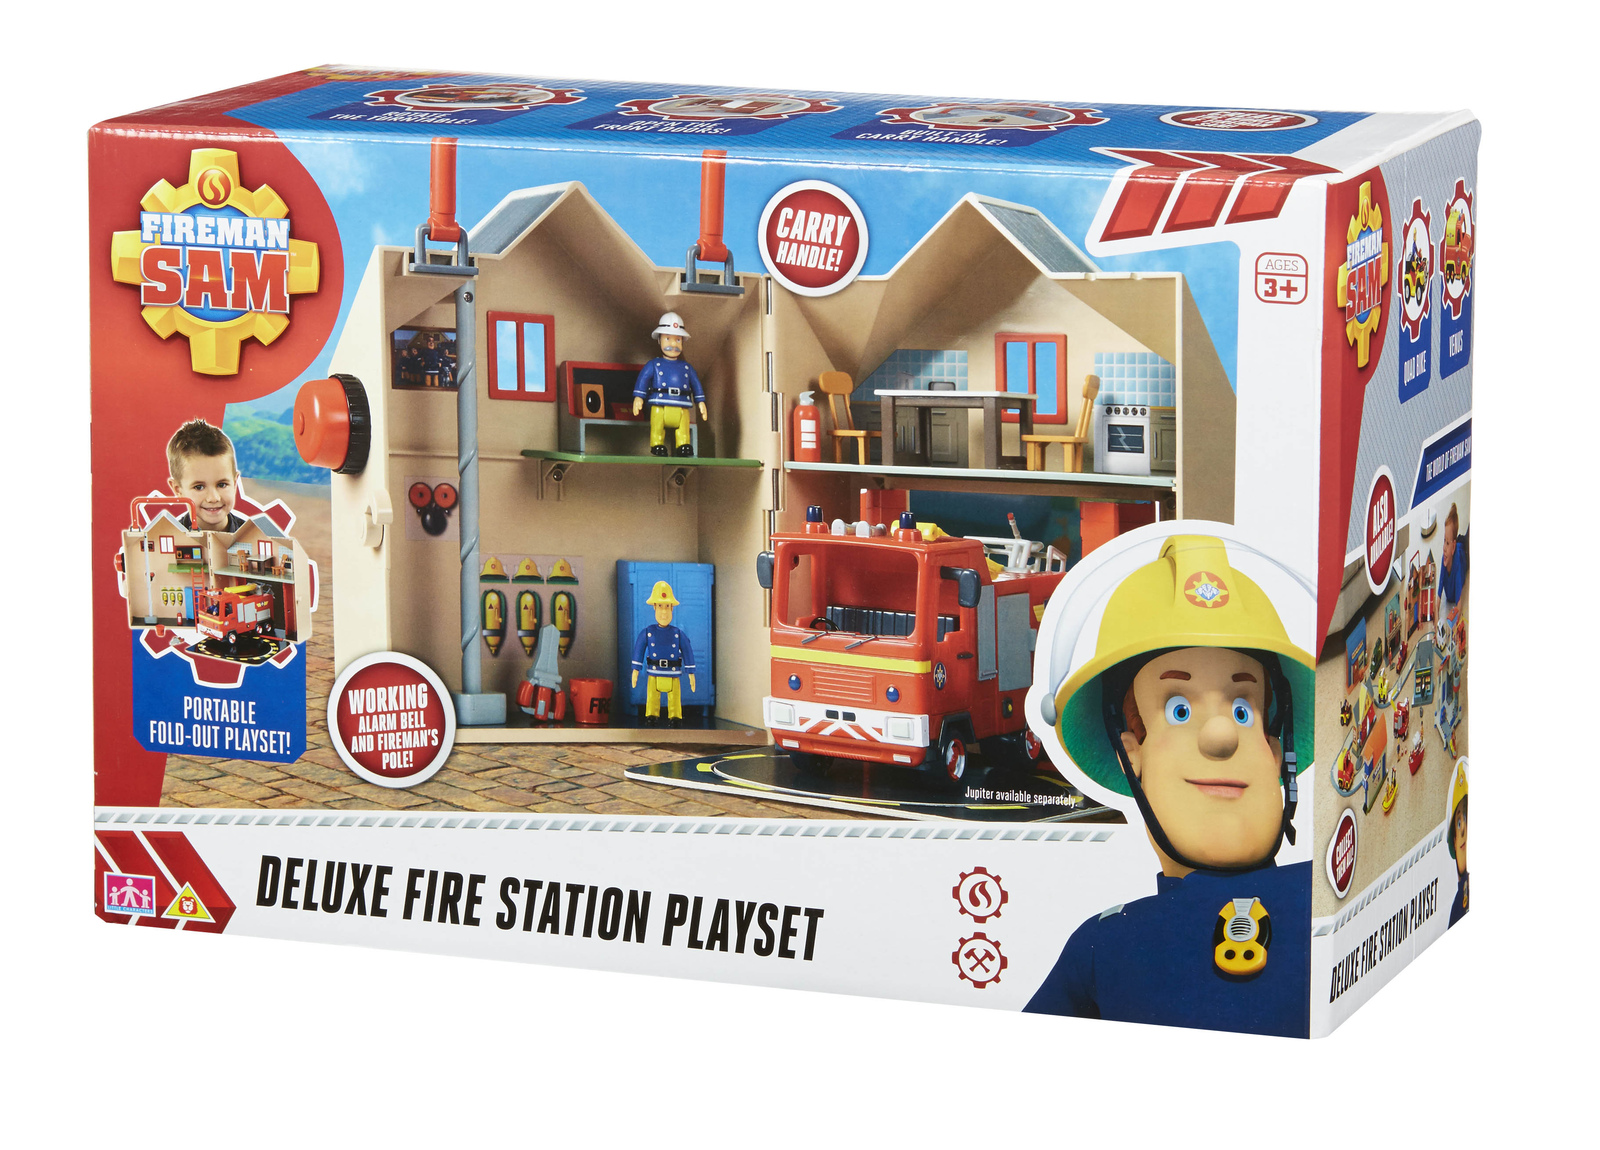 ... Fireman Sam Deluxe Fire Station Playset image ...  sc 1 st  Mighty Ape & Fireman Sam Deluxe Fire Station Playset | Toy | at Mighty Ape NZ